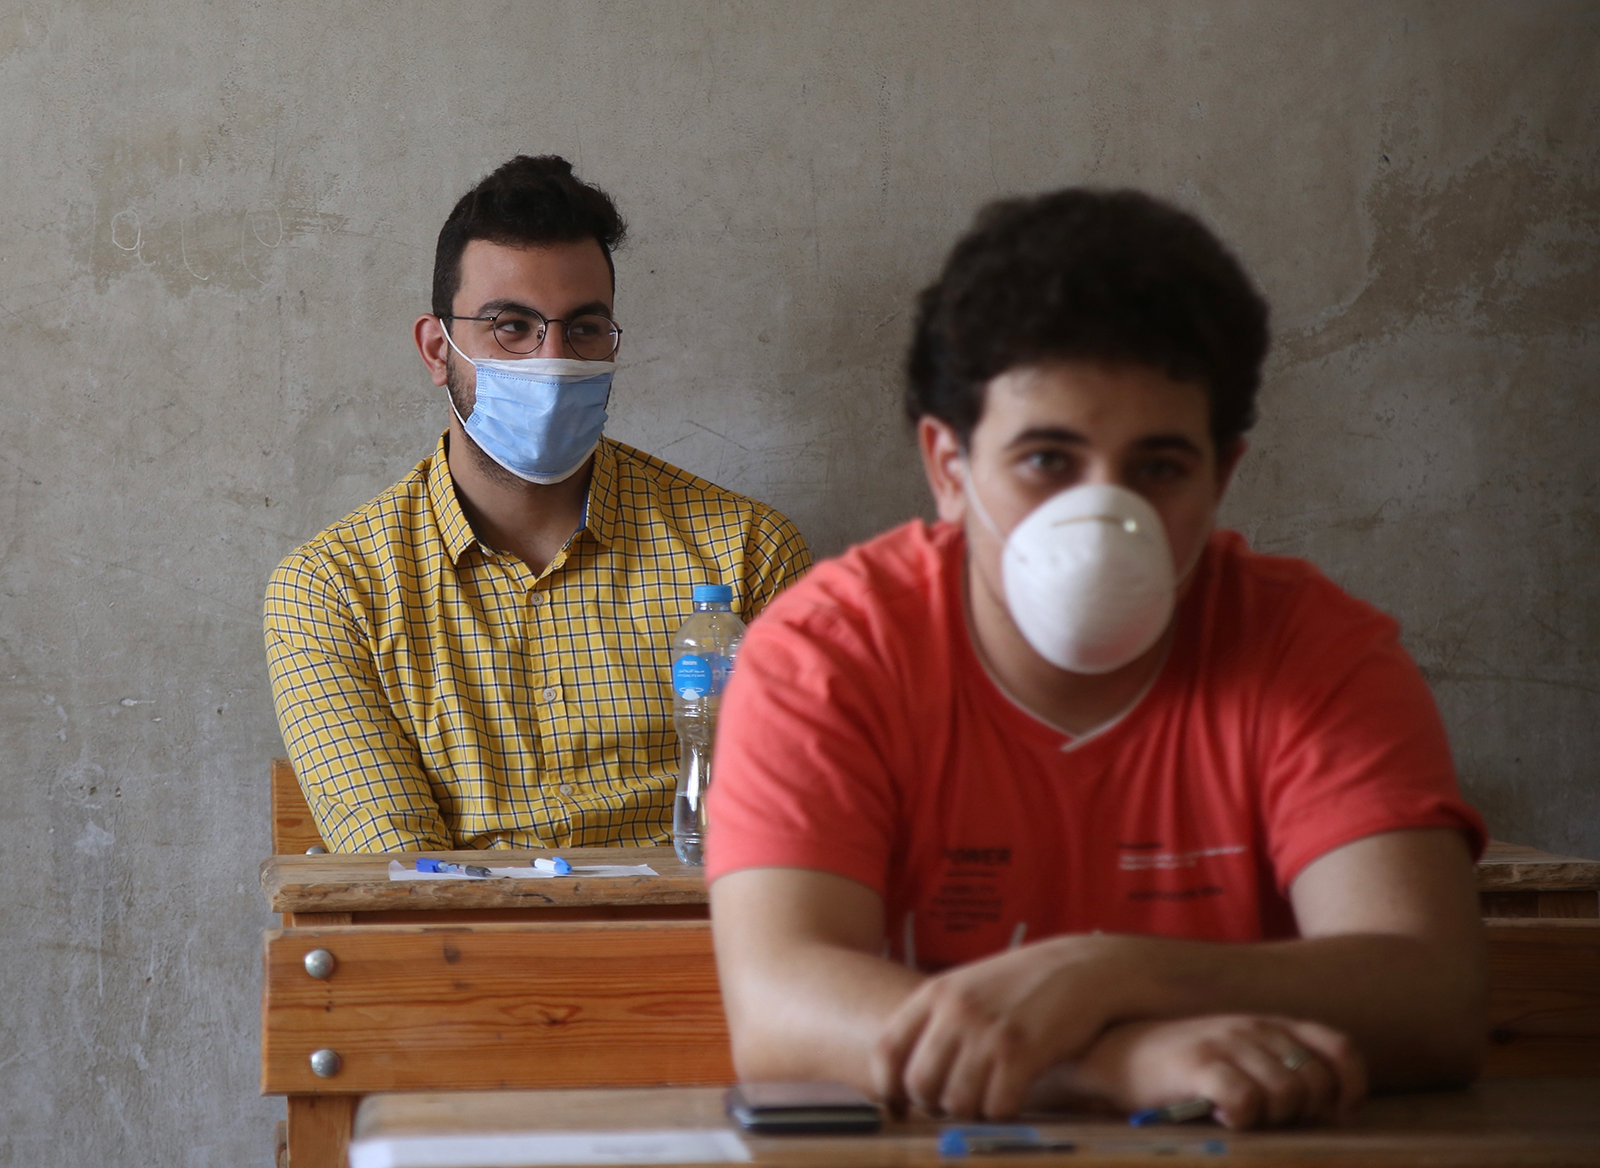 Students wearing face masks are seen at a high school exams site in Cairo, Egypt, on June 21.